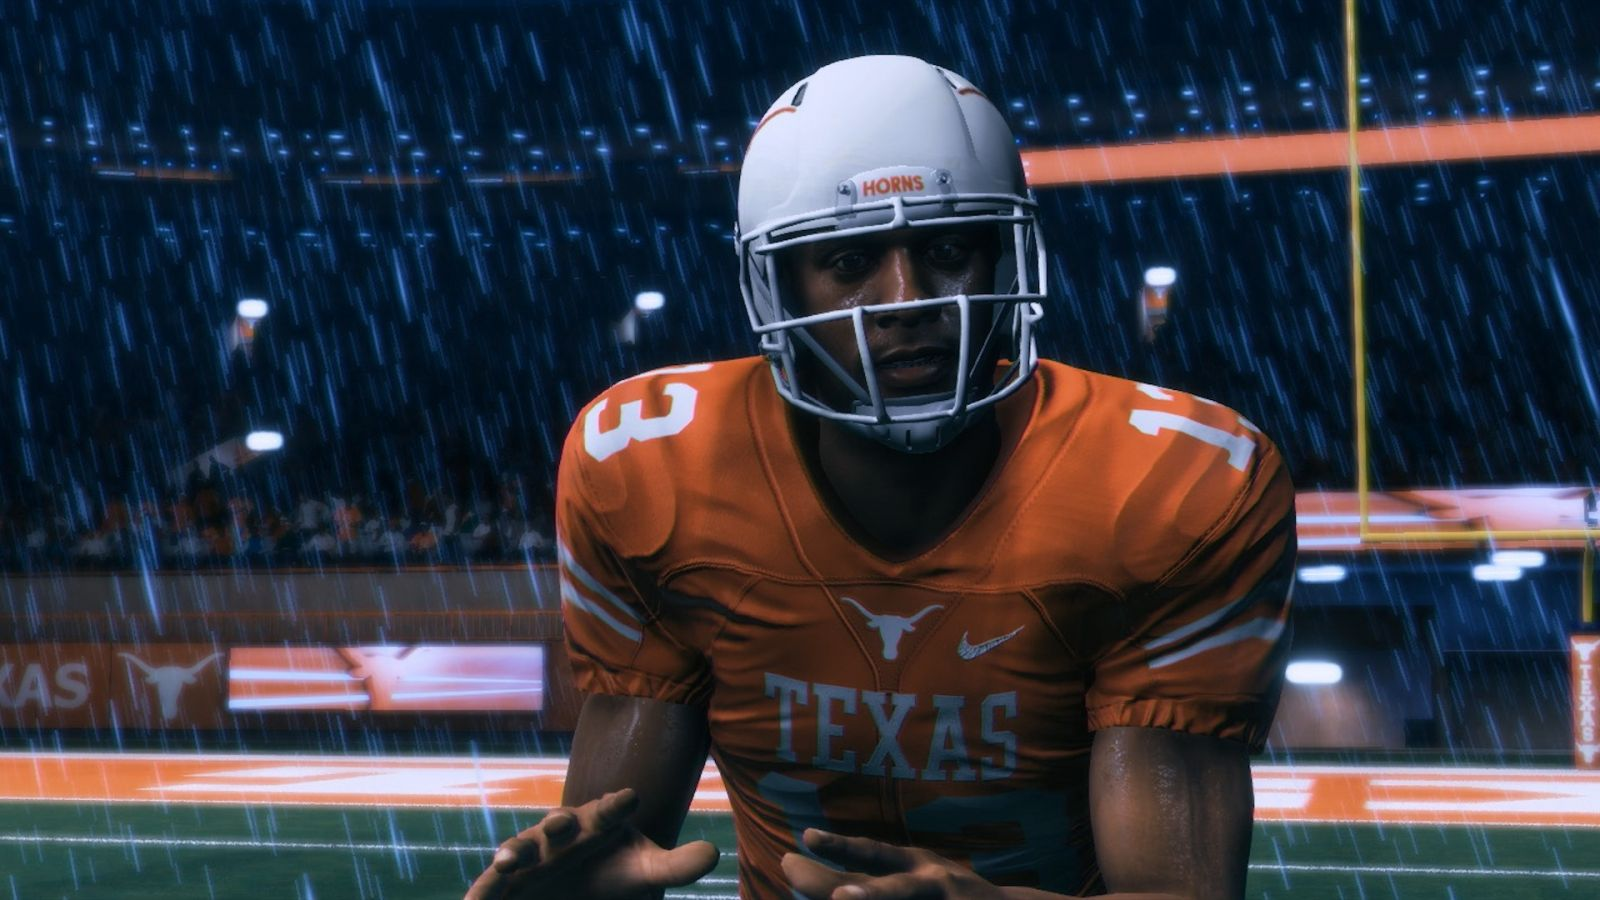 Madden NFL 18 Was The Best Software Sale In August 2017